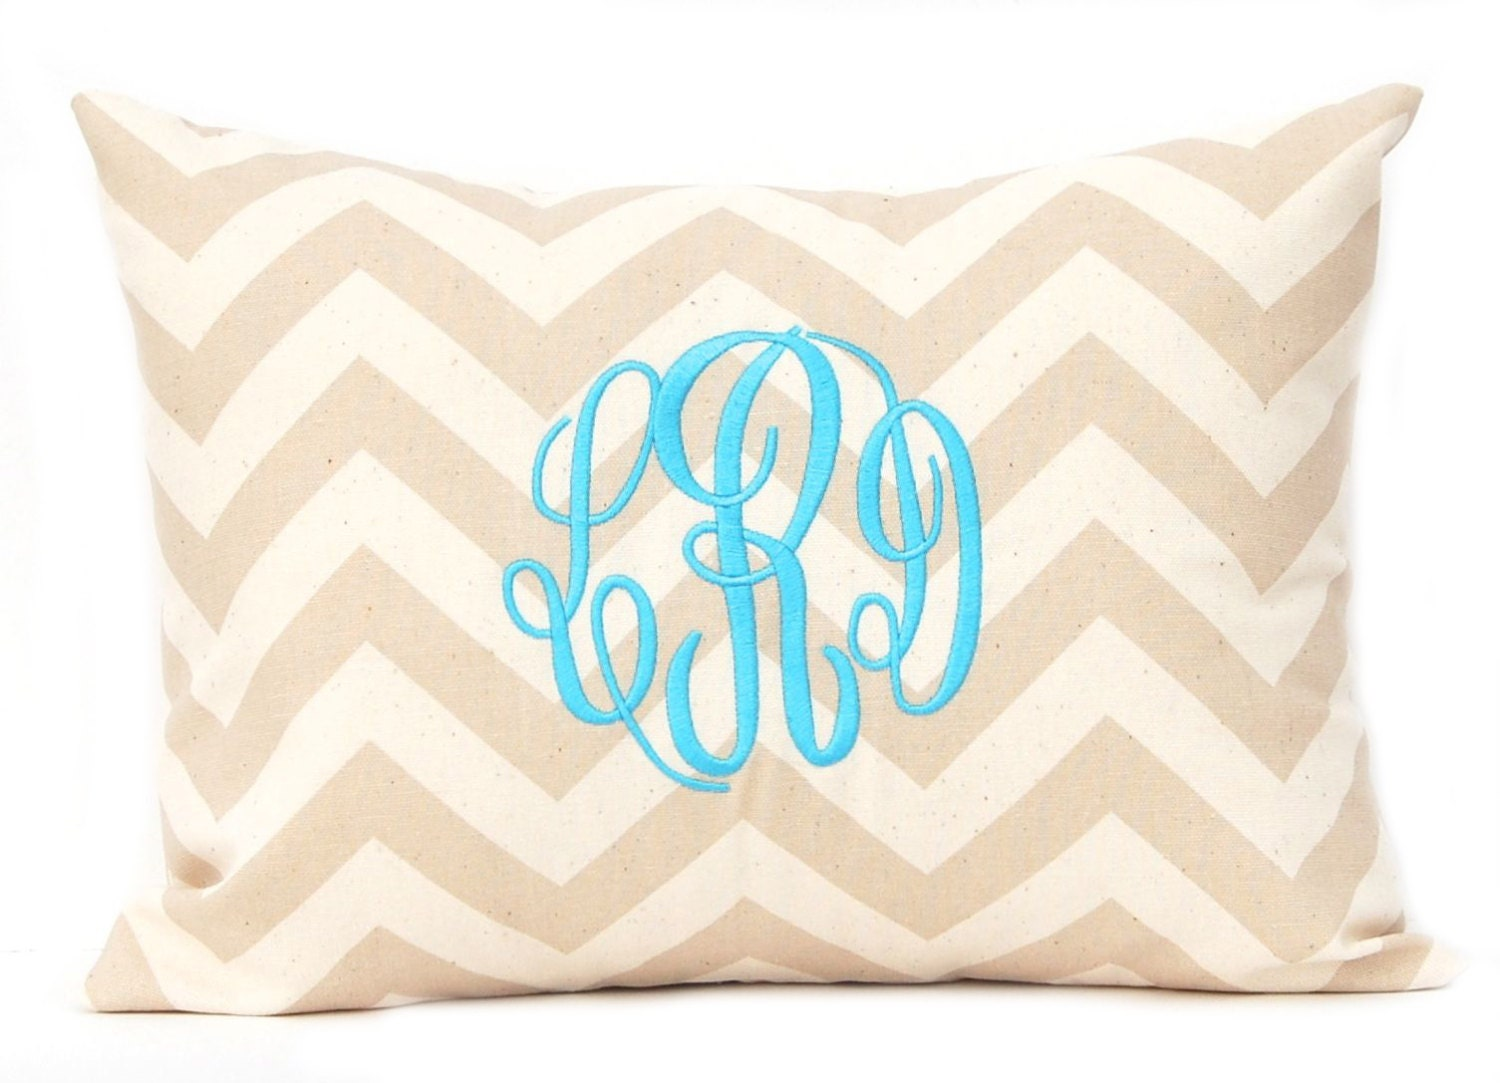 monogrammed the explore pillow using glitter pillows budget monogram air cricut